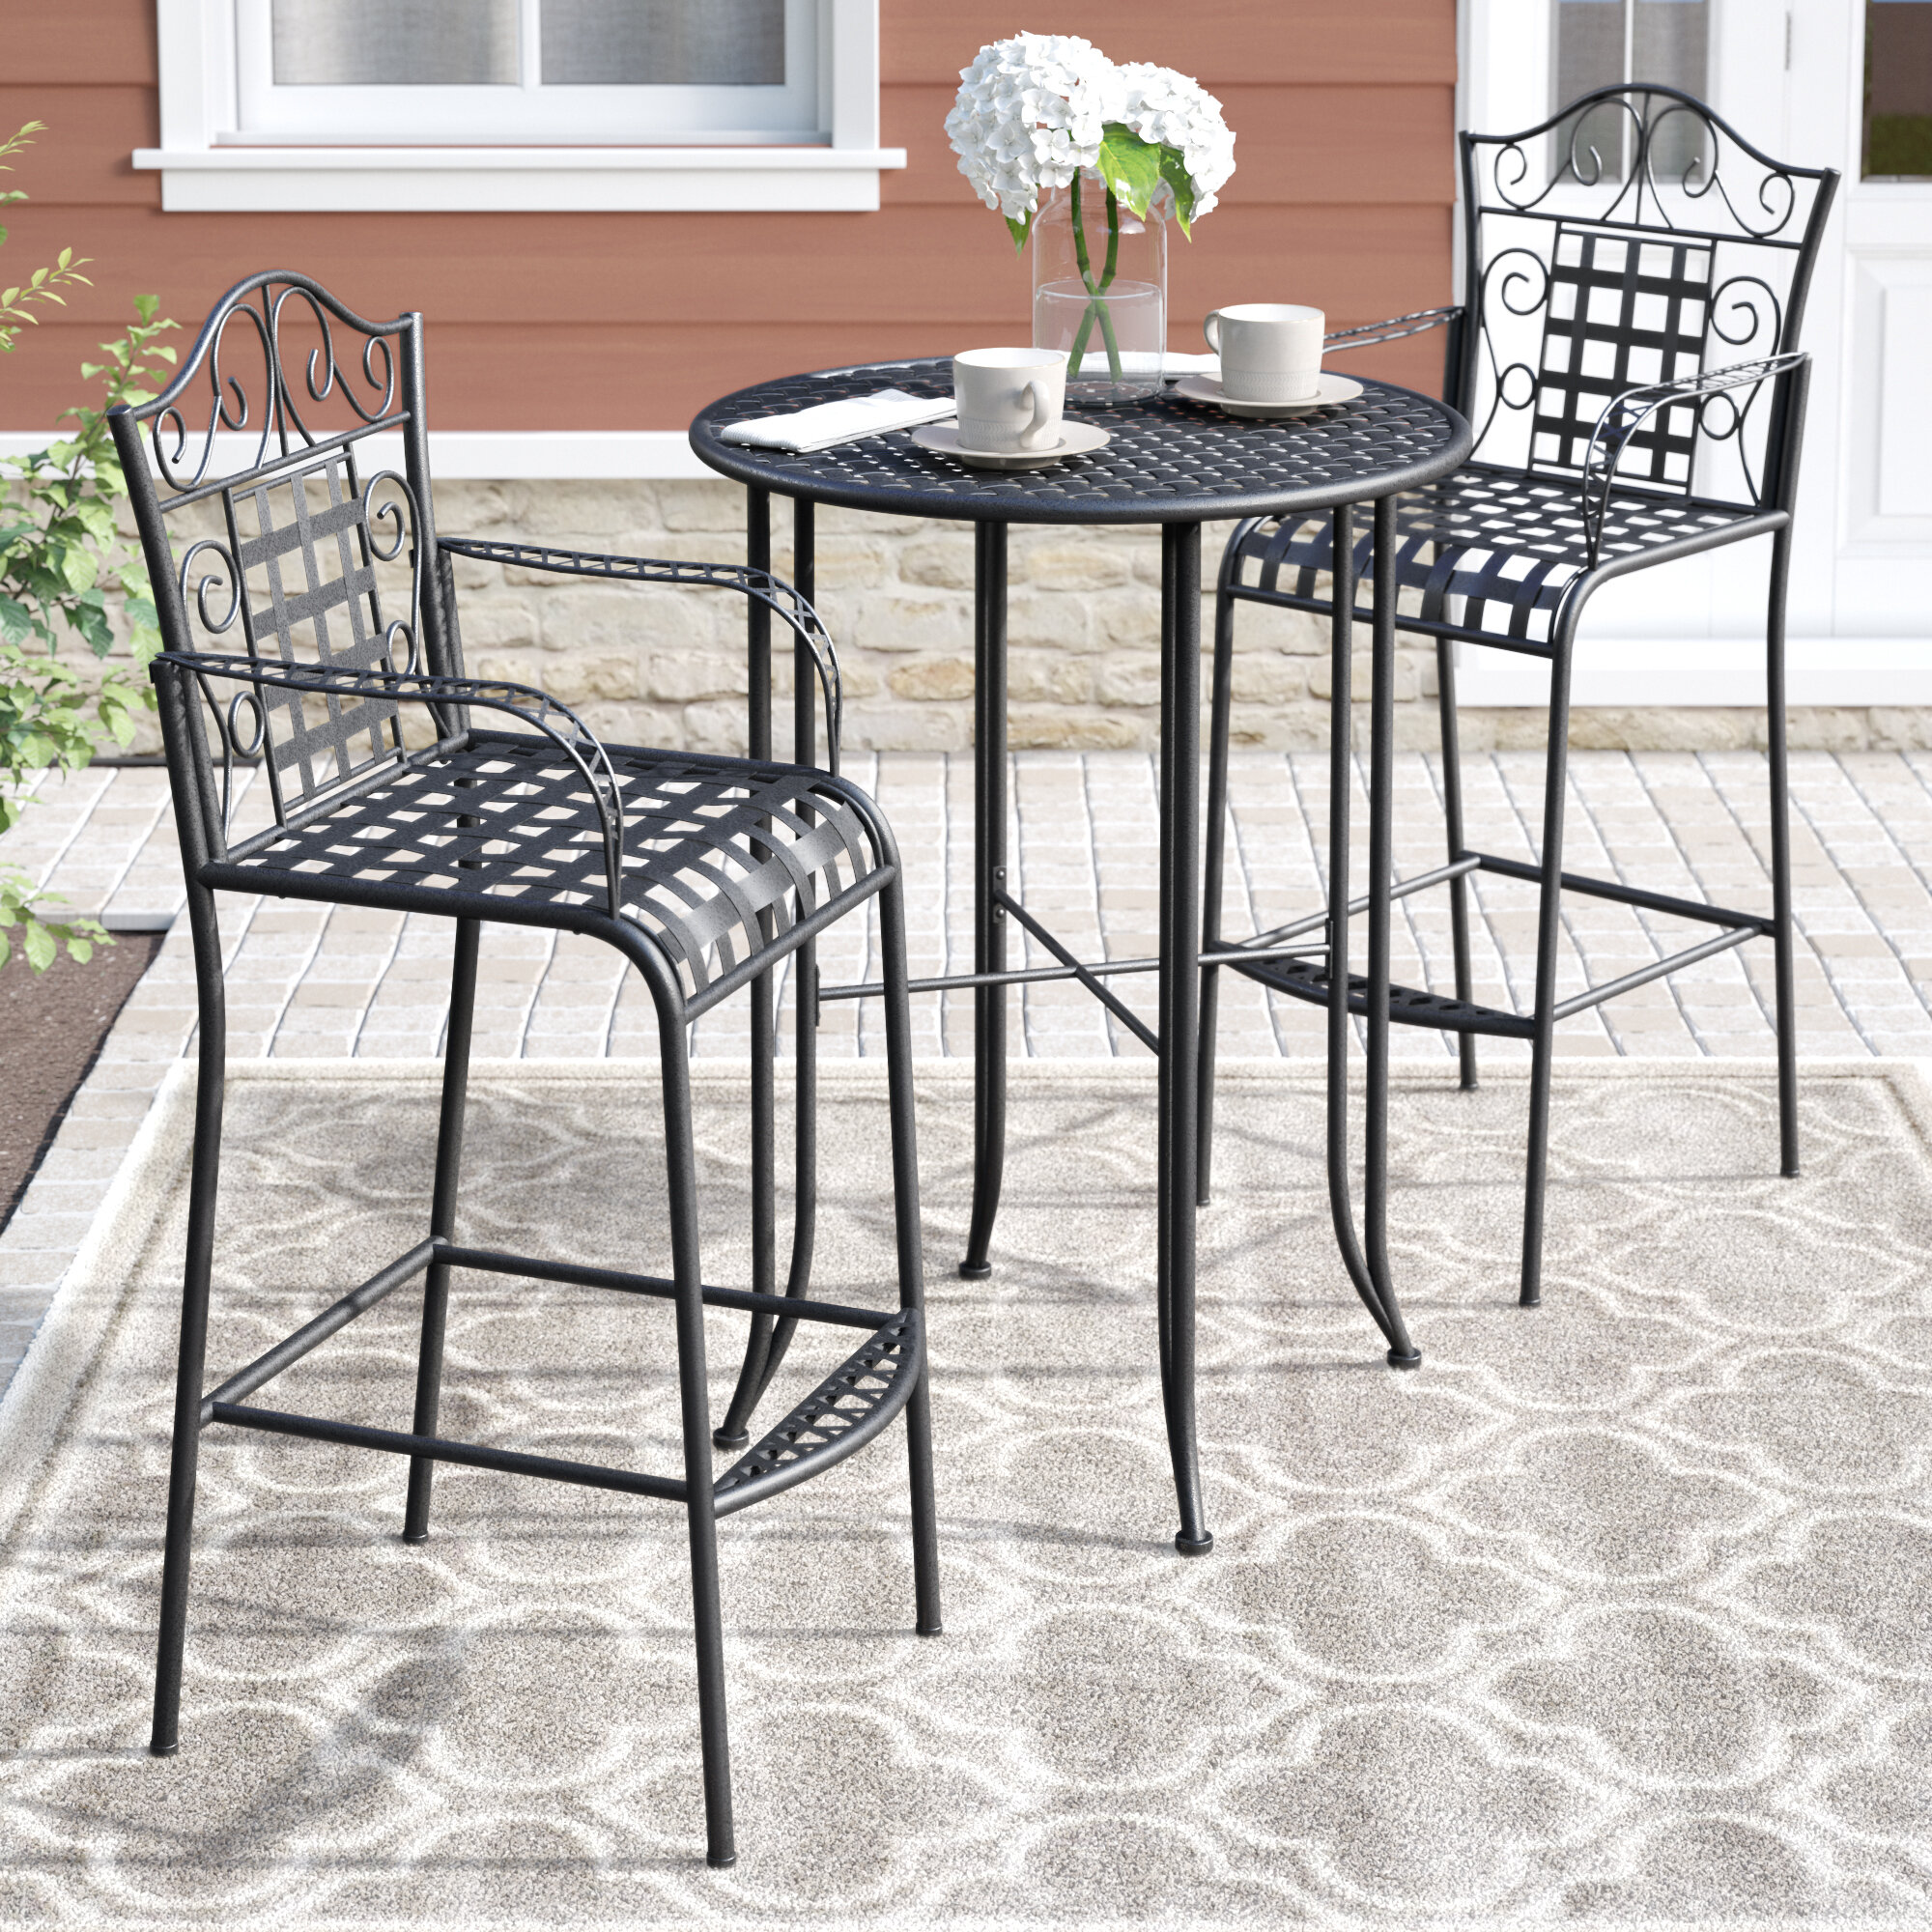 Attrayant Outdoor Tall Patio Dining Sets | Wayfair